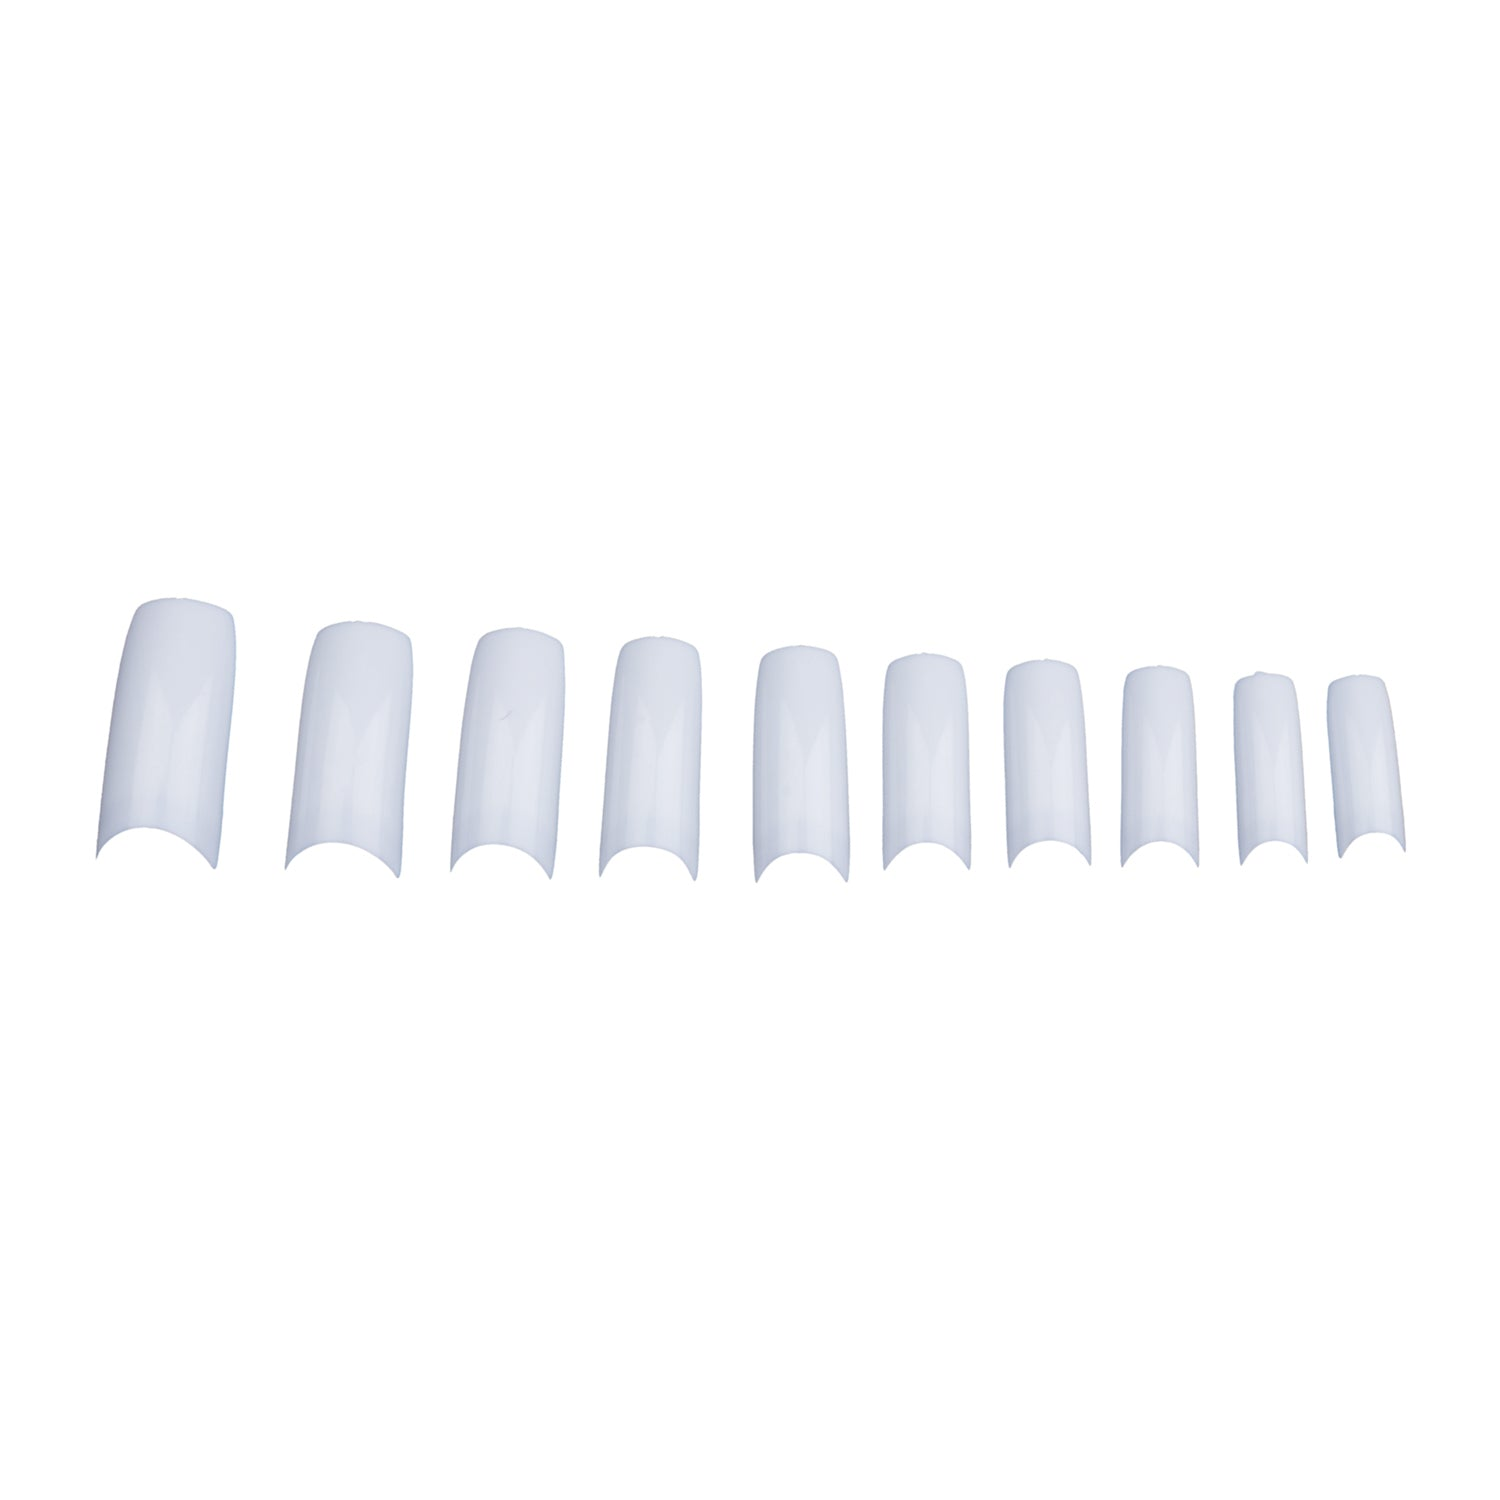 500 pcs French Style Acrylic Artificial Fingernails Half Tips White